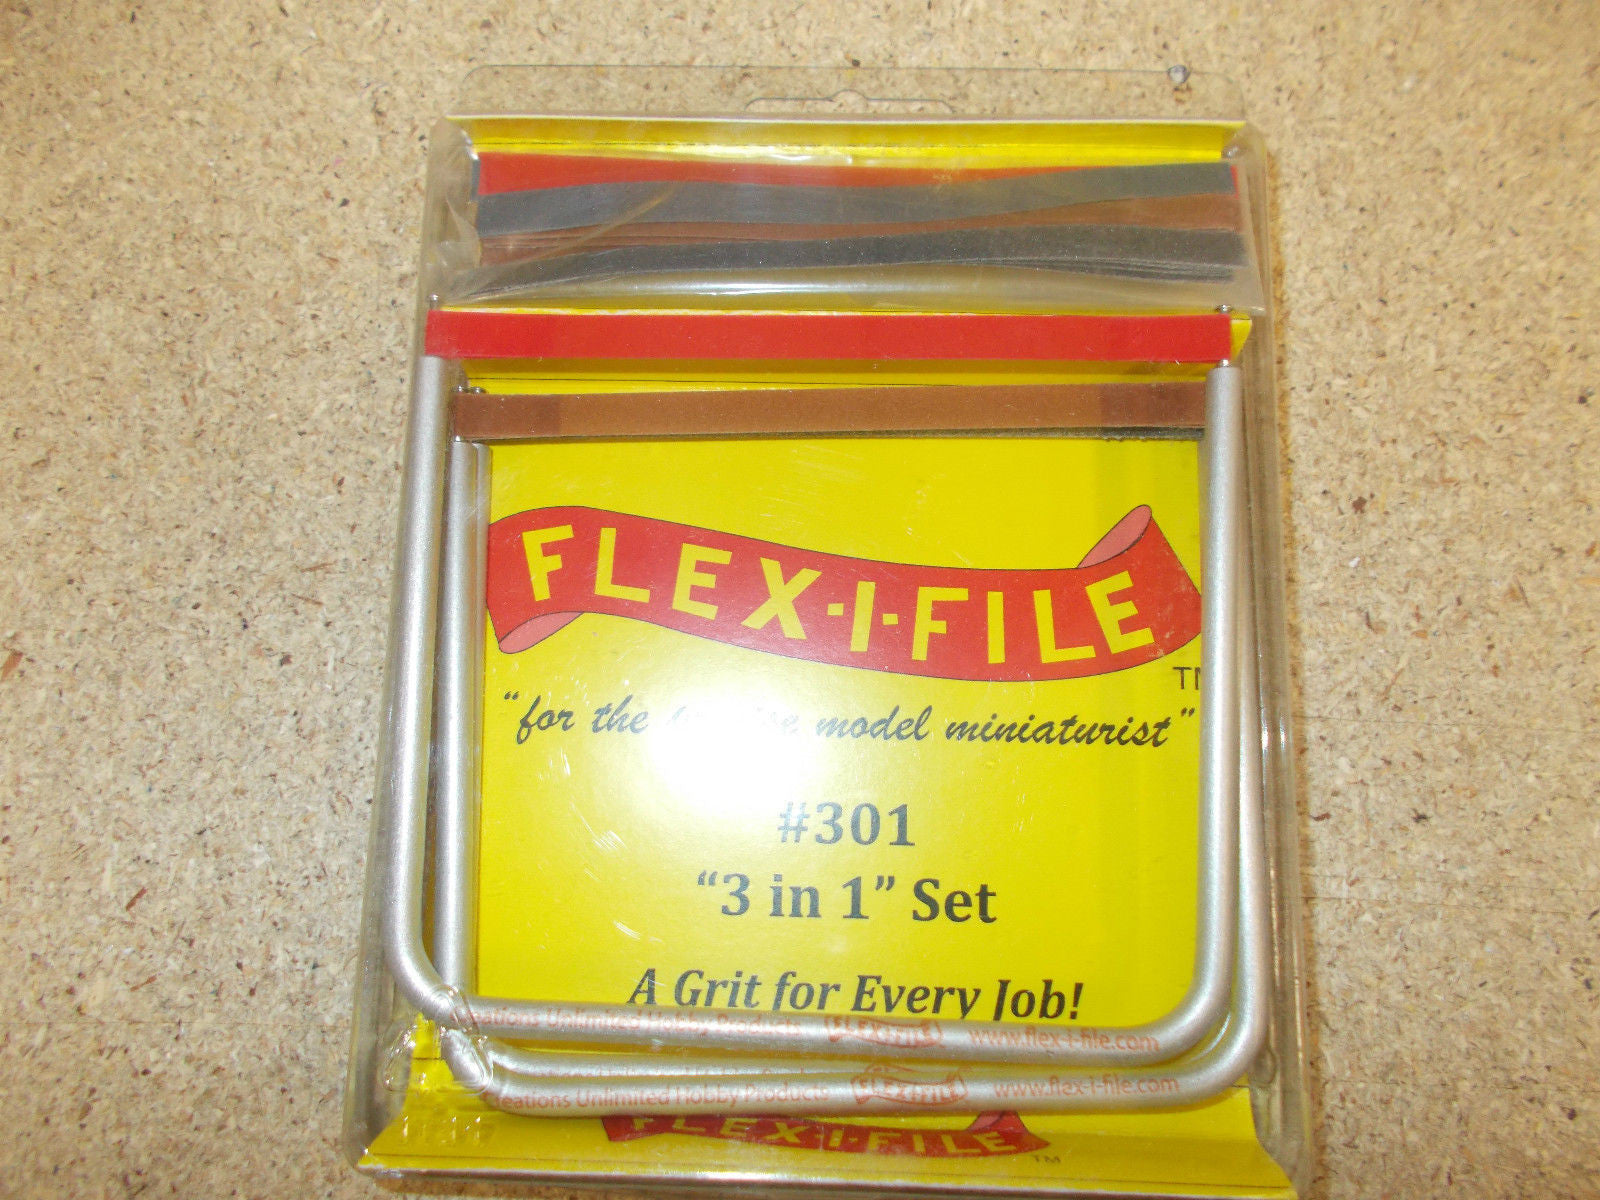 Flex-i-file Abrasives 3 in 1 set #301. Abrasive tapes in aluminium frame